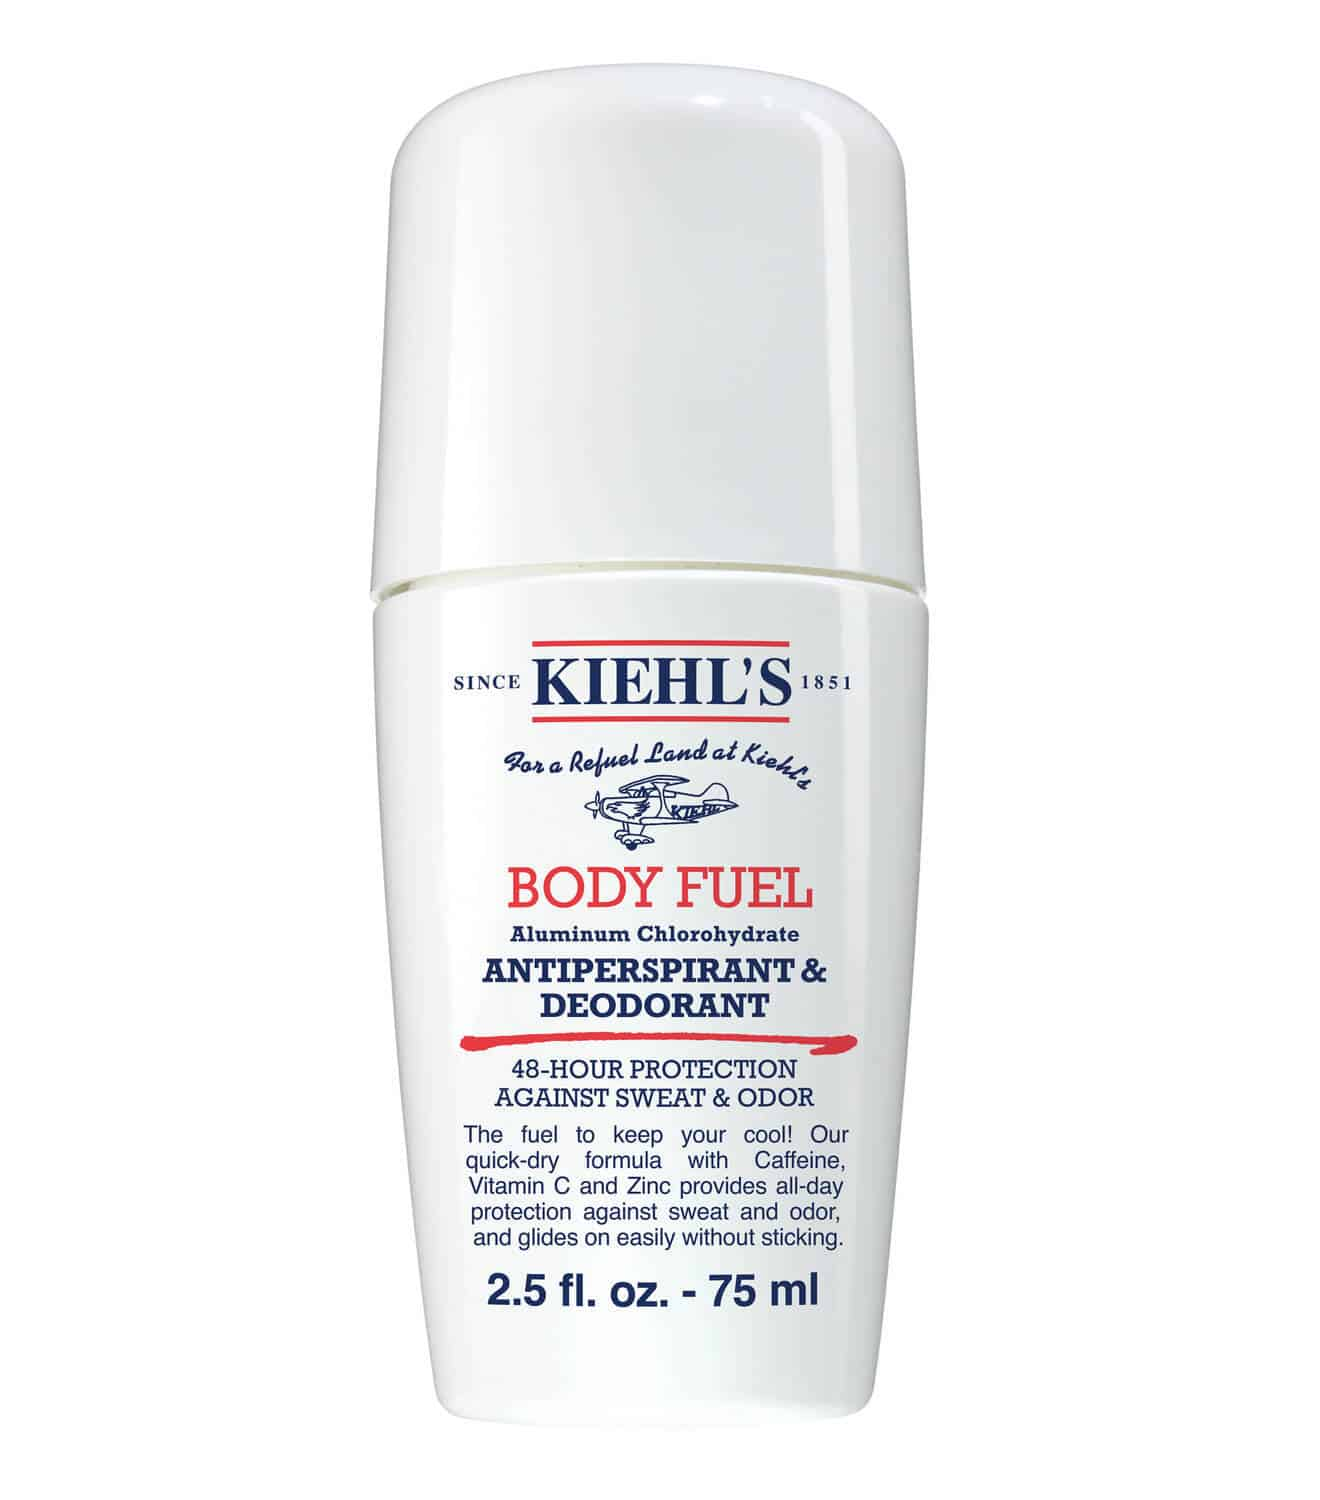 Body Fuel Deodorant & Antiperspirant from Kiehl's